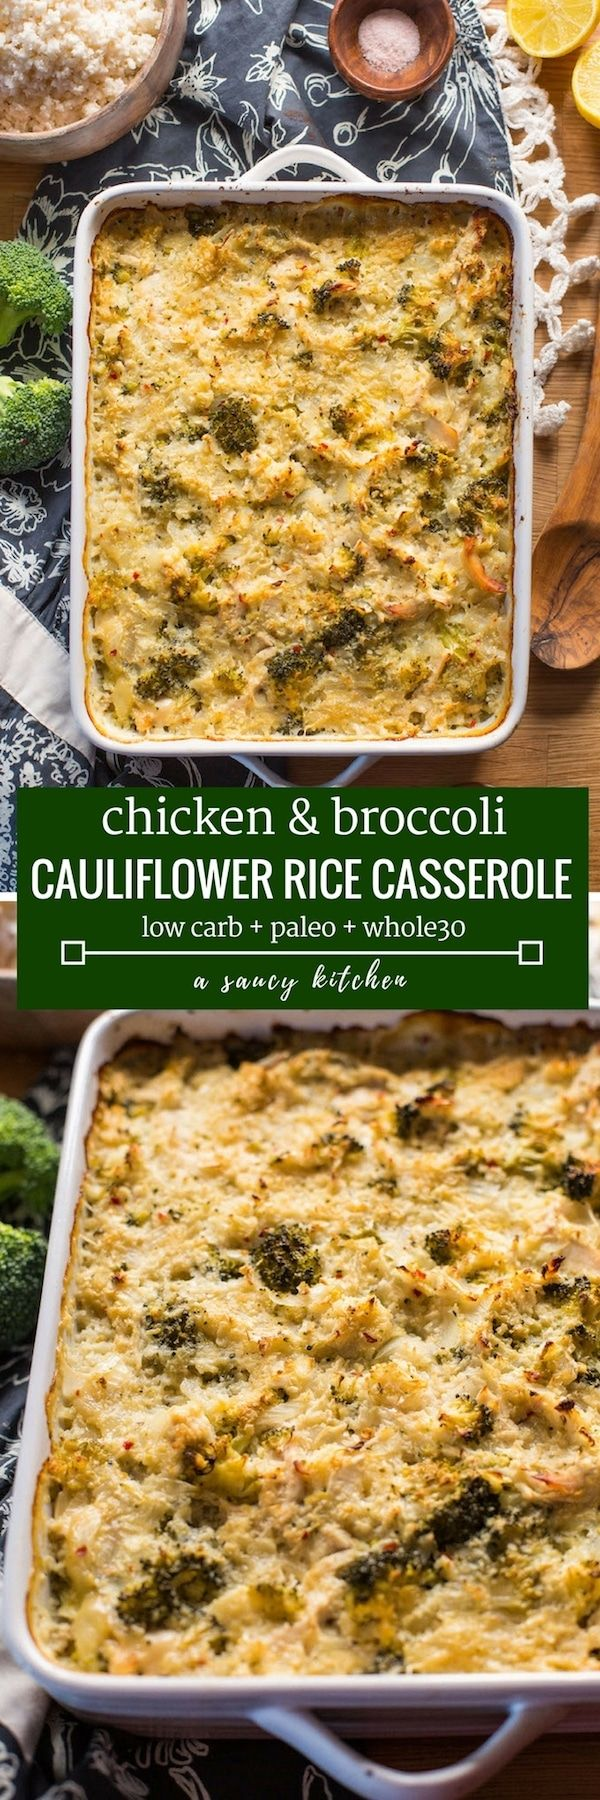 Chicken & Broccoli Cauliflower Rice Casserole - a low carb spin on a classic casserole made with riced cauliflower in place of actual rice and a dairy free sauce that's easy to whip up! | Gluten Free + Paleo + Whole30 + AIP adaptable